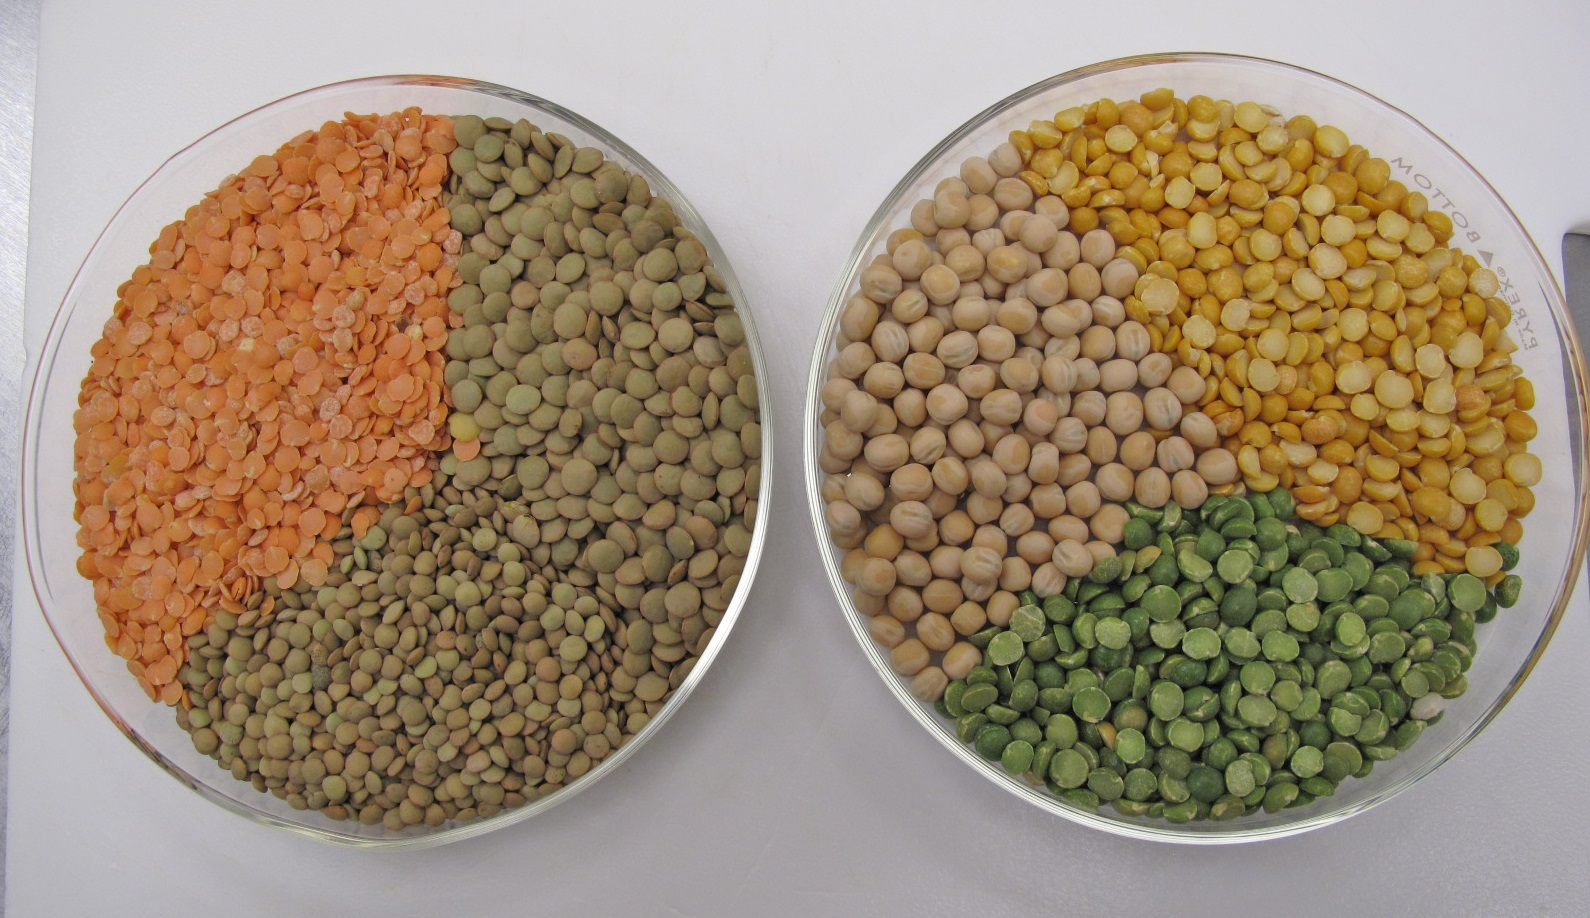 Two containers of pulses on a white background. The left container holds split red and green lentils, and the right contains yellow and green varieties of dried peas.